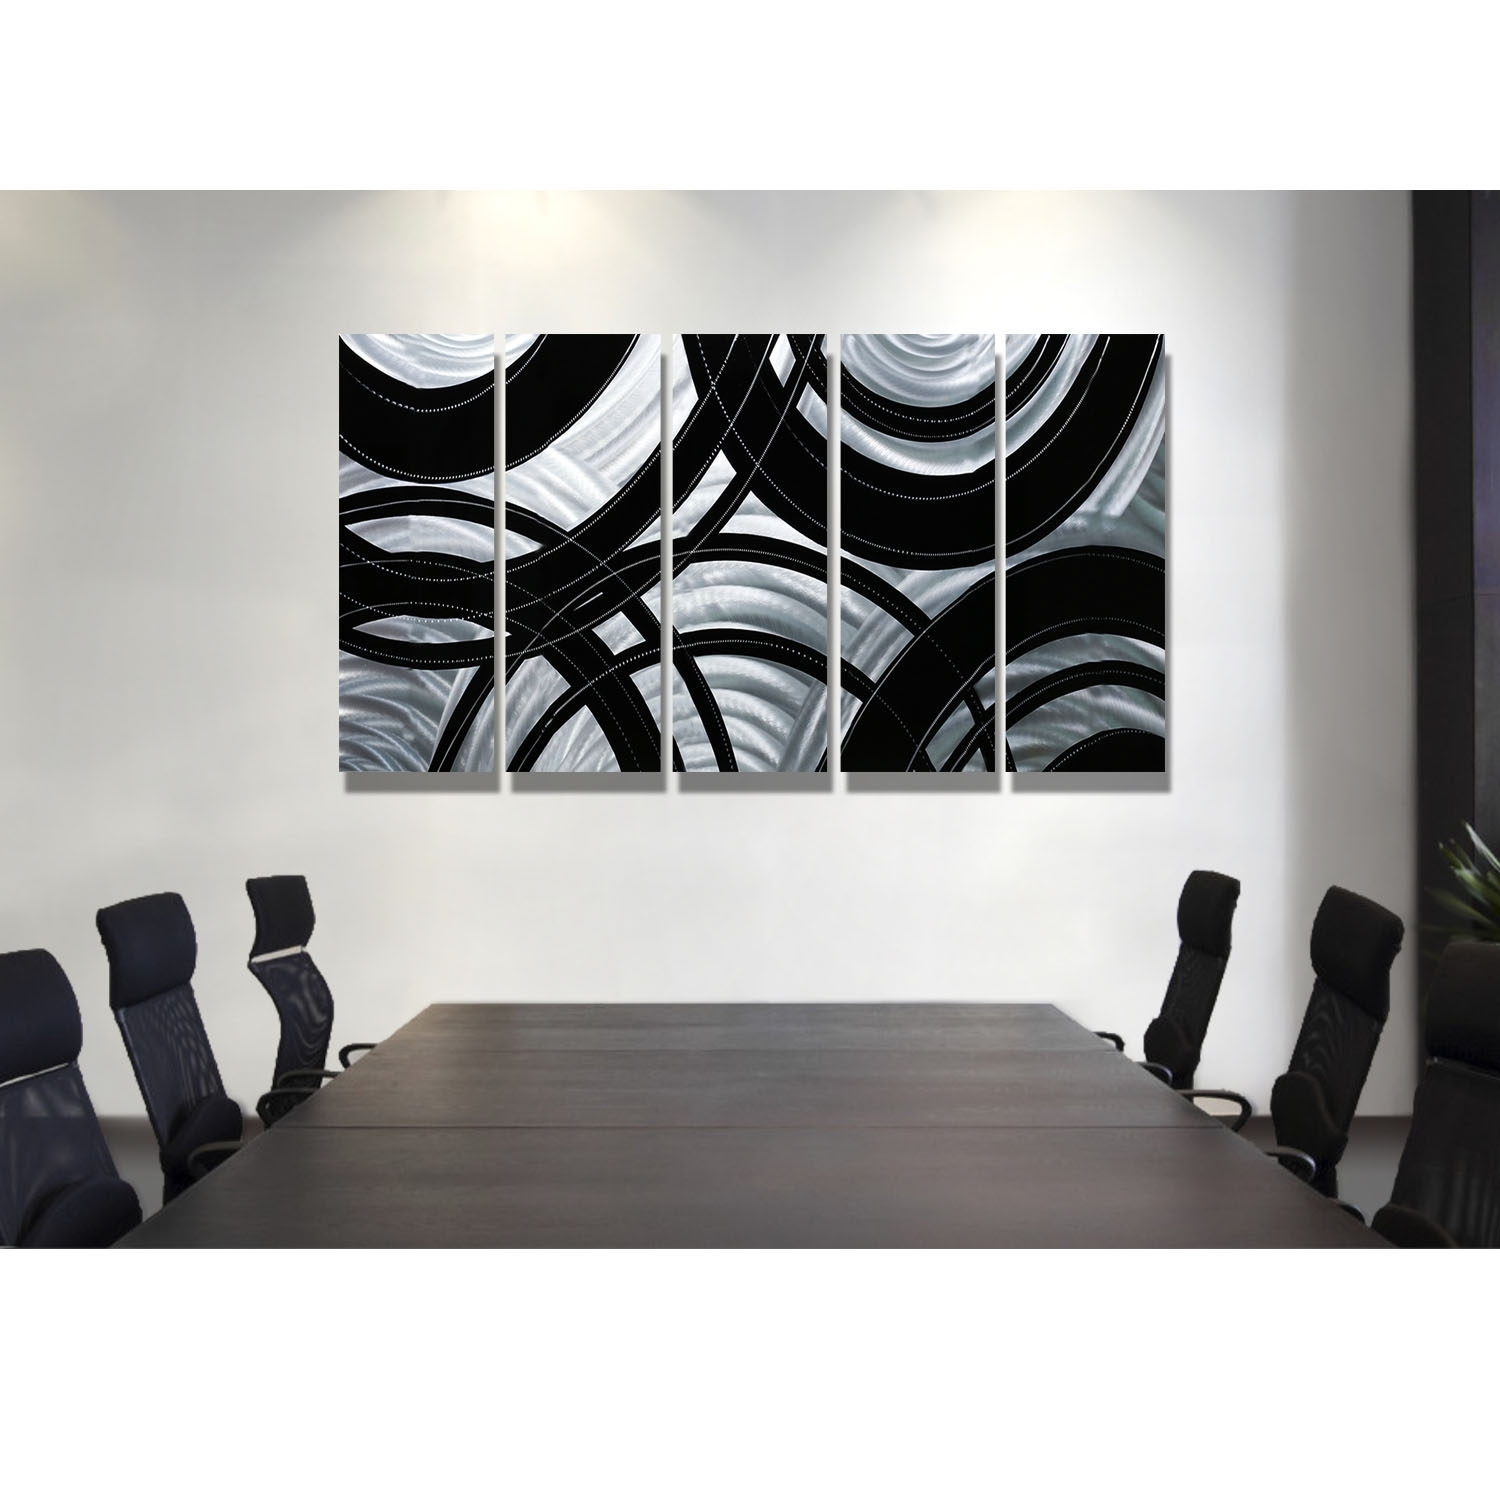 Synergy – Black And Silver Metal Wall Art – 5 Panel Wall Décor Within Current Silver Wall Art (View 9 of 20)